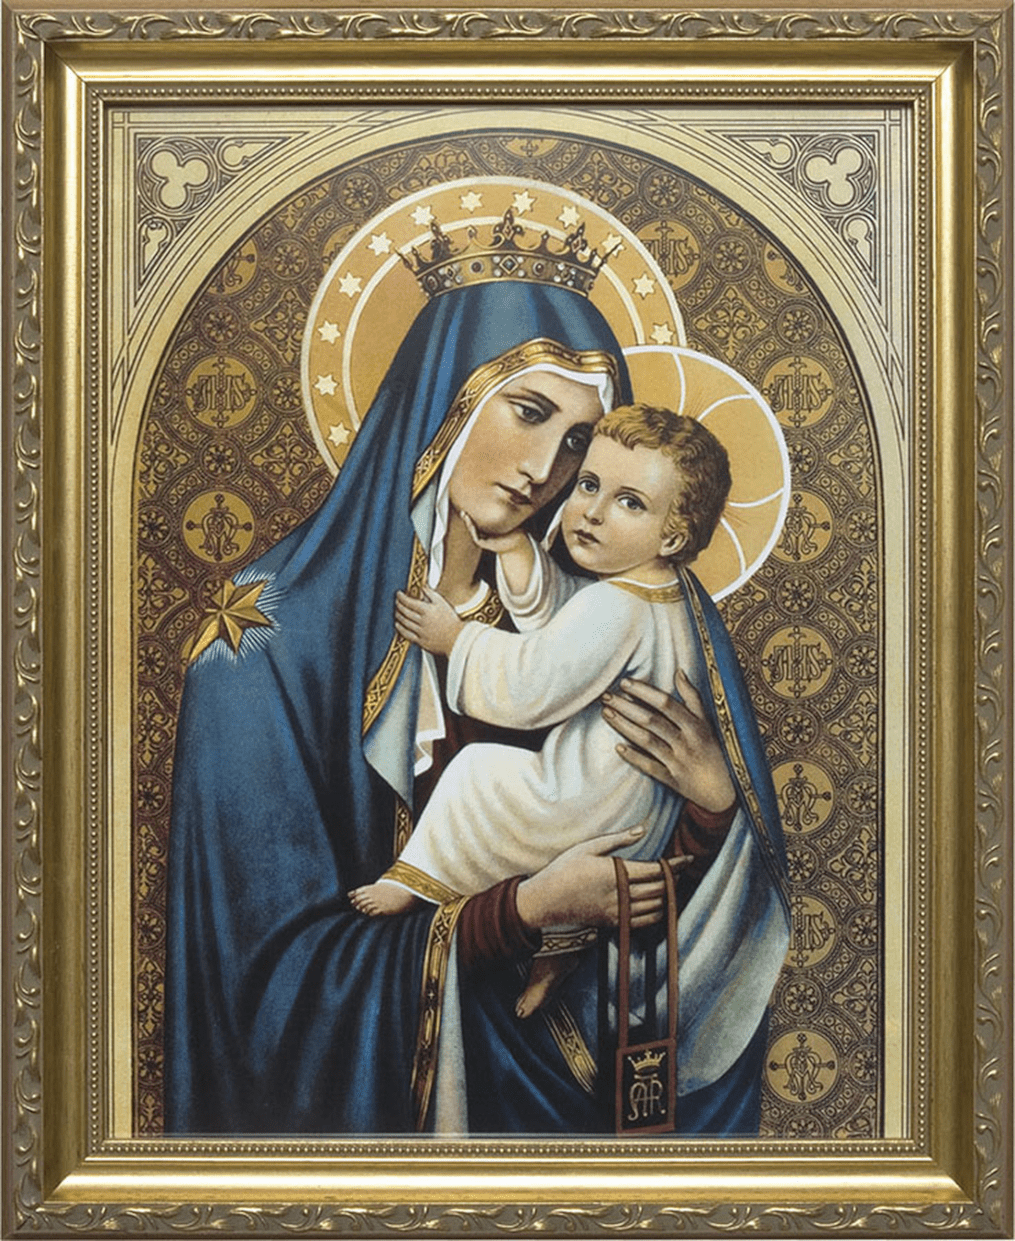 Our Lady of Mount Carmel Gifts